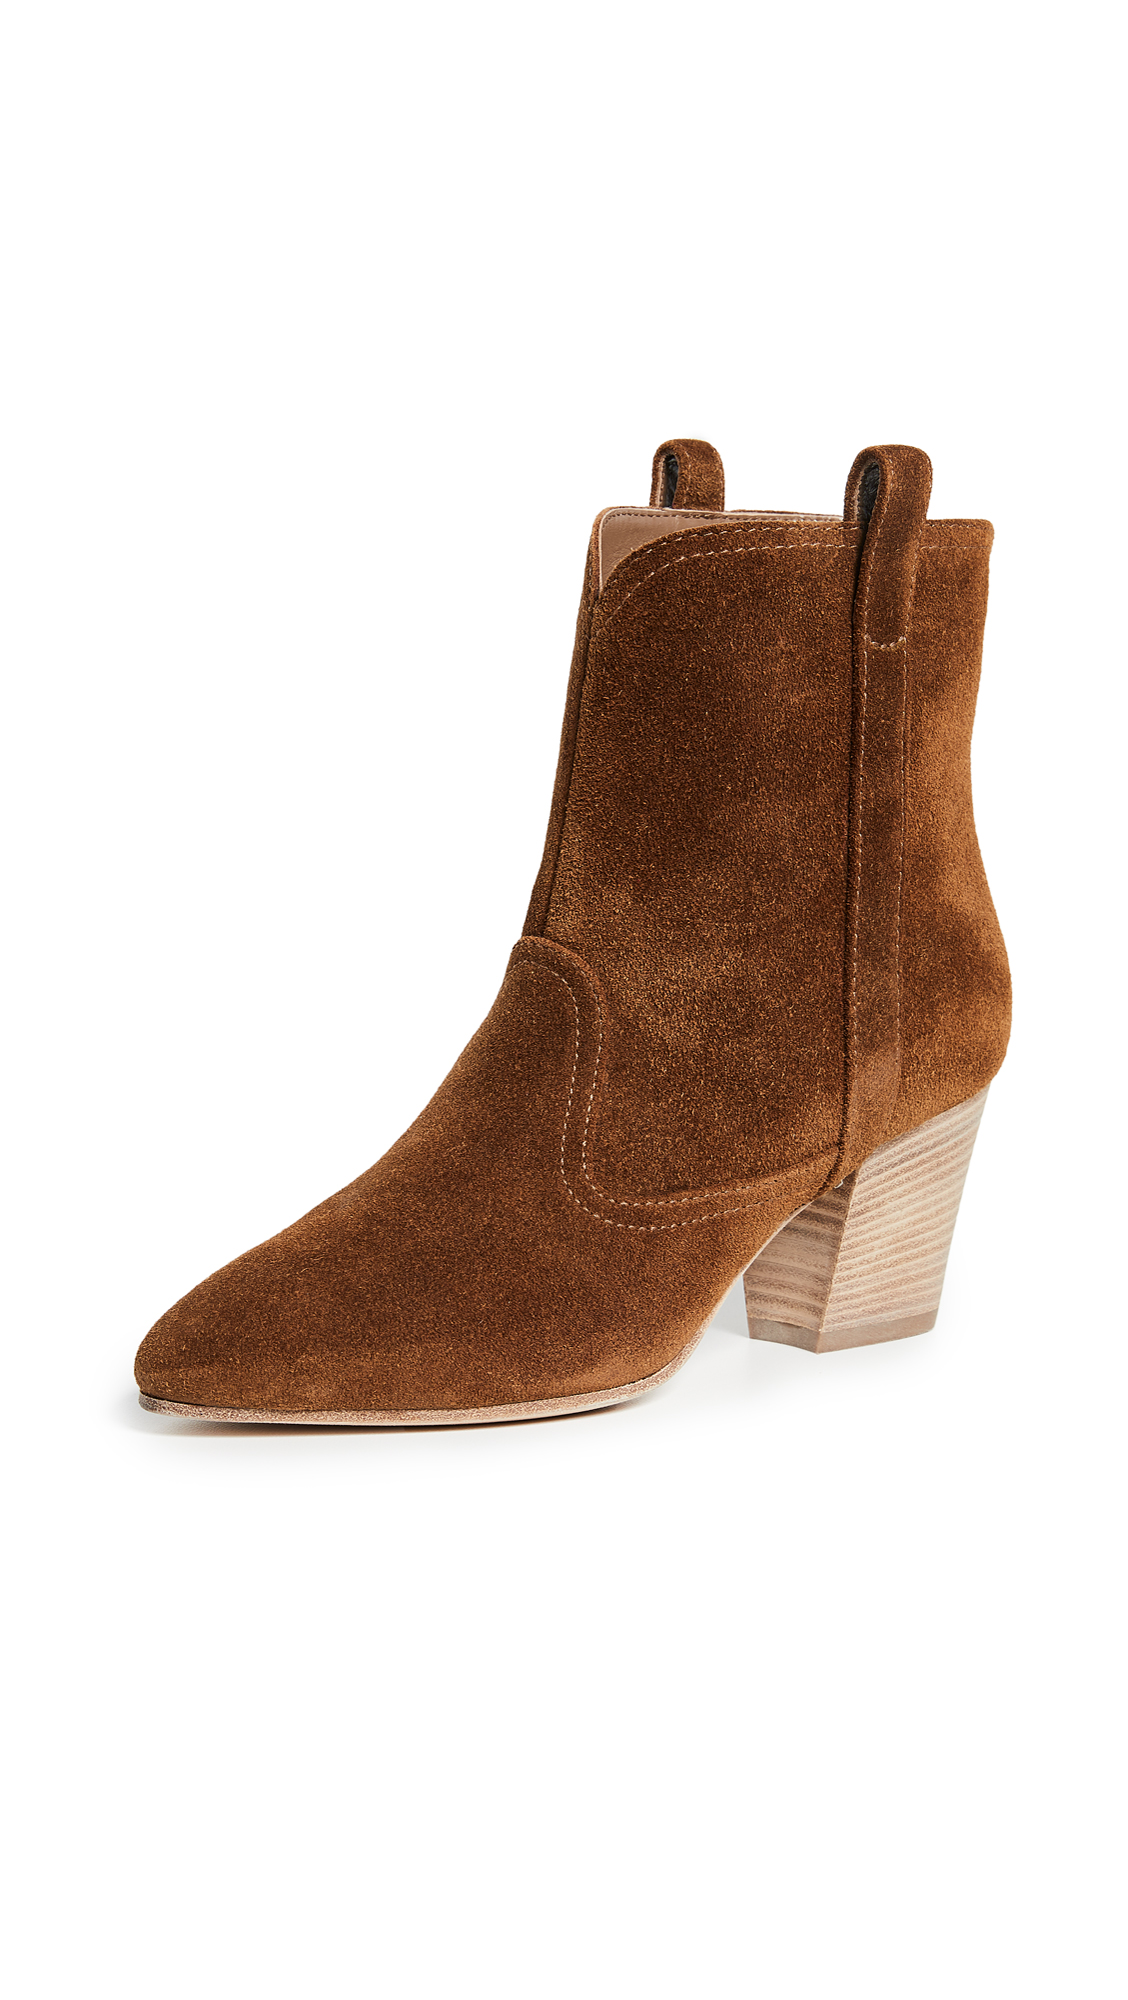 Laurence Dacade Sheryll Boots - Camel